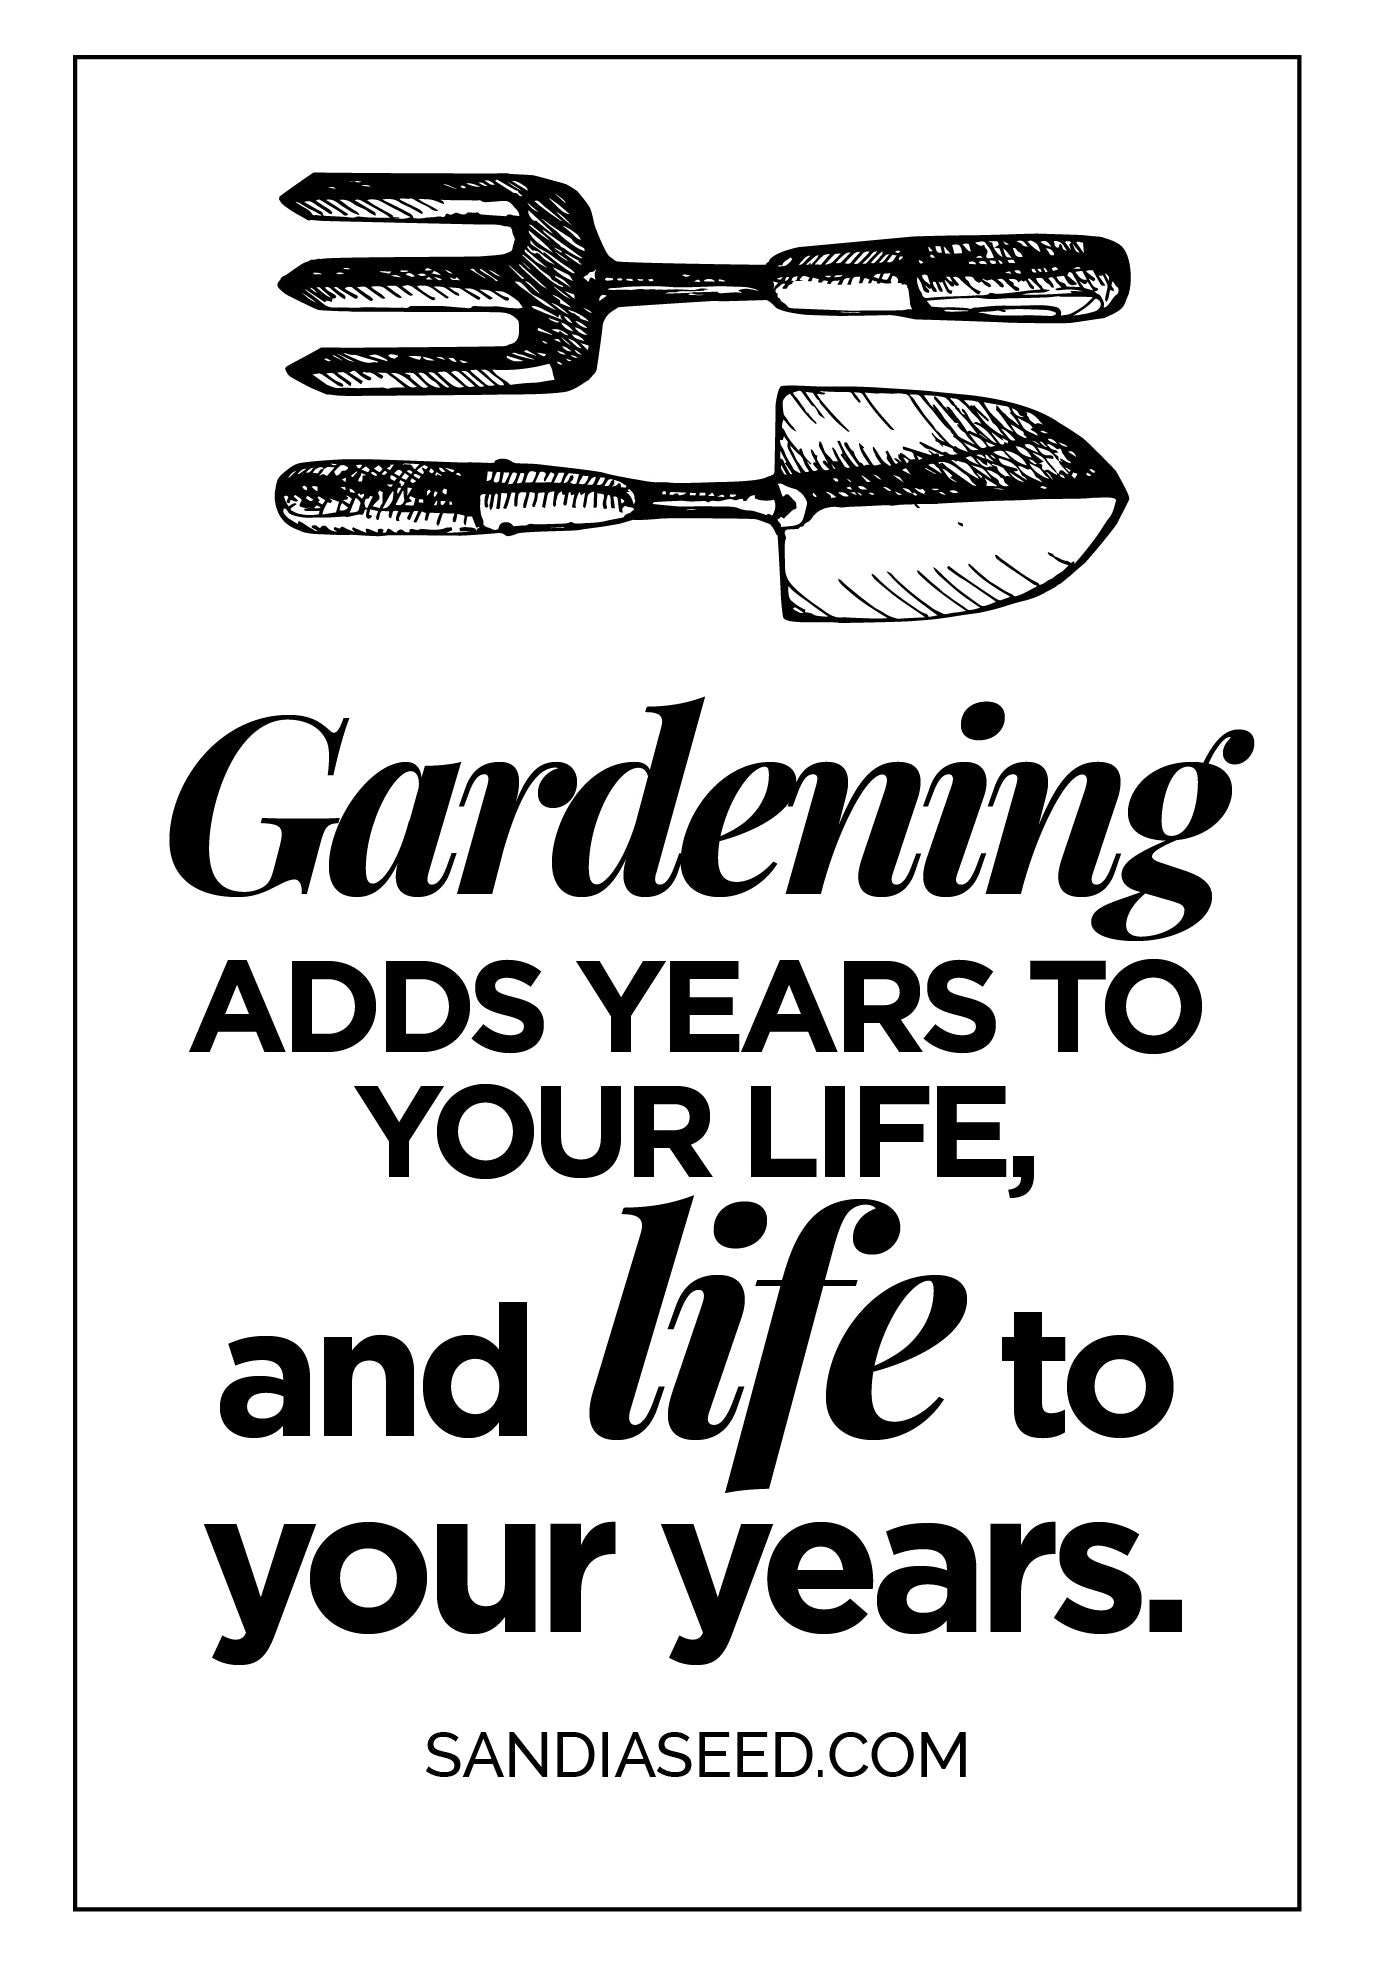 Gardening Quotes: Gardening adds years to your life and life to your years!